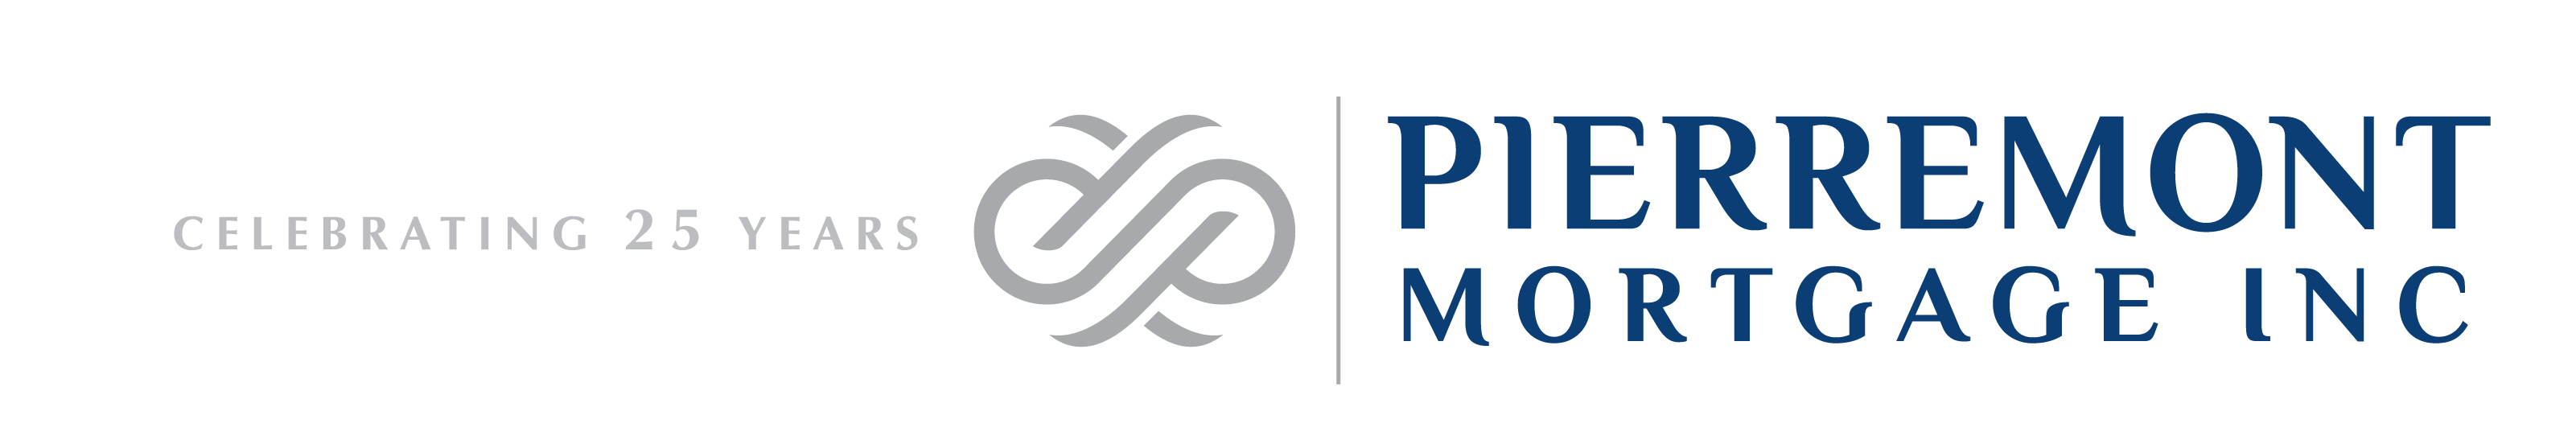 Create an innovative new image for Pierremont Mortgage, Inc. emphasizing 25 years in business